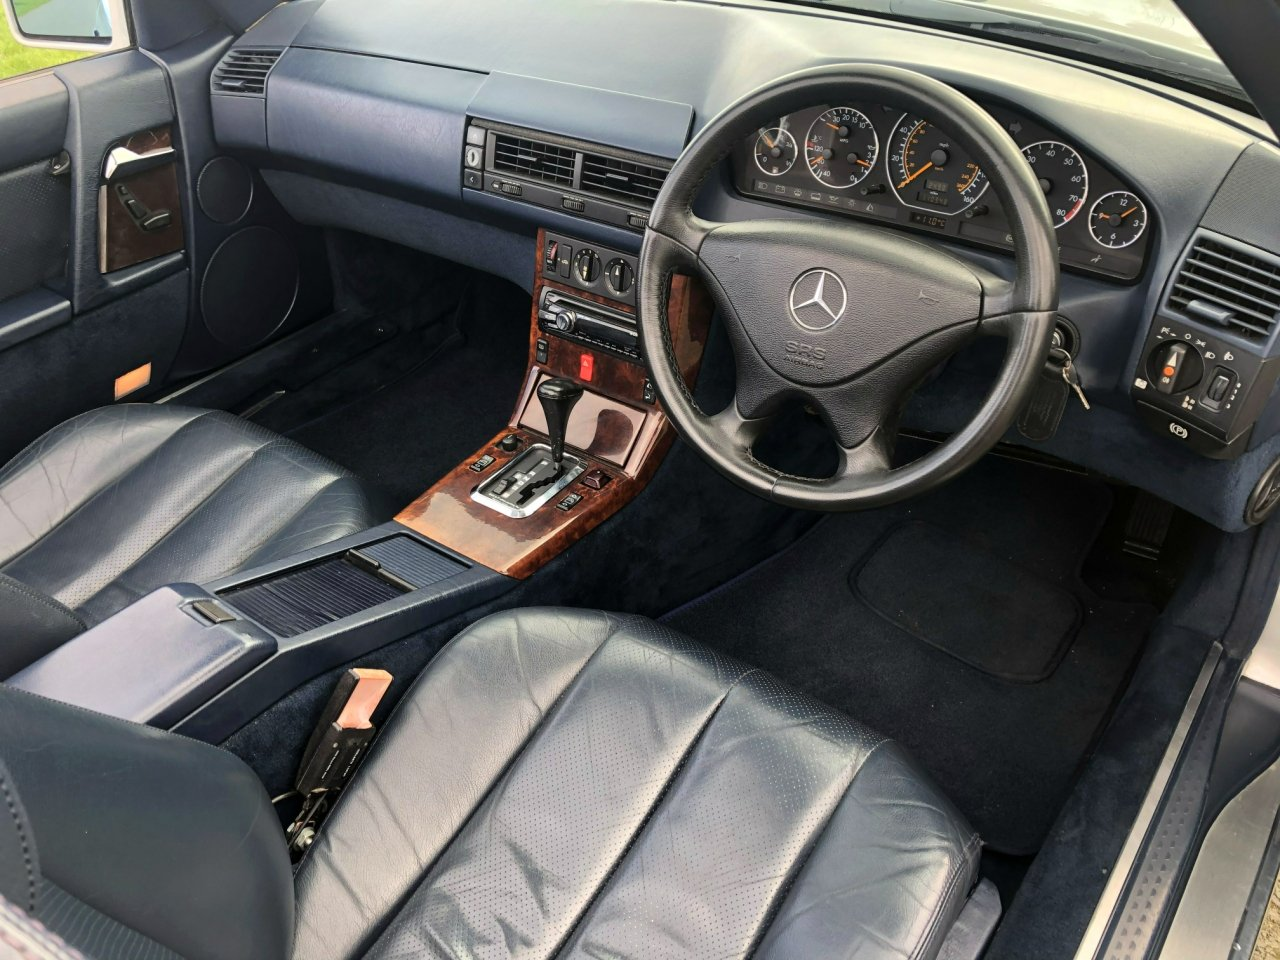 1990 Mercedes Benz 300 SL-24V R129 Automatic For Sale (picture 5 of 6)